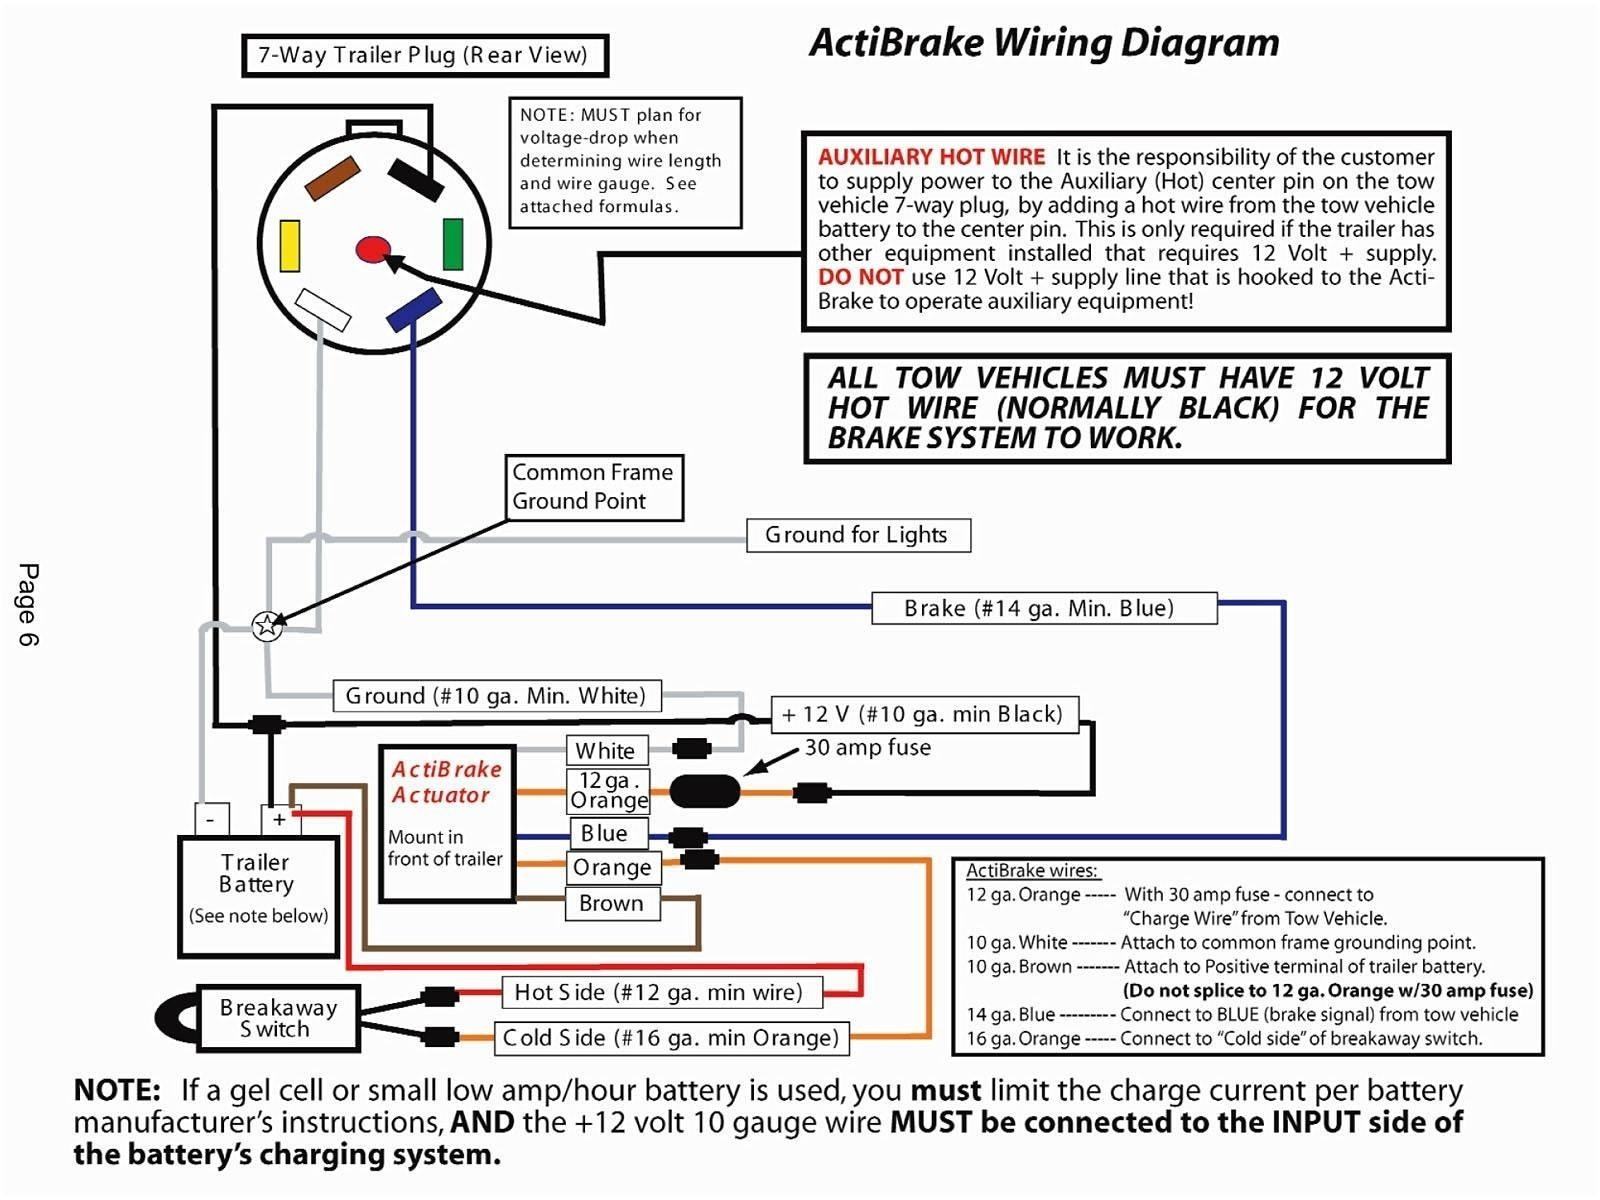 Get Tow Vehicle Wiring Diagram Download Trailer Brake Wiring Diagram  Caravan Wiring Diagram Tow